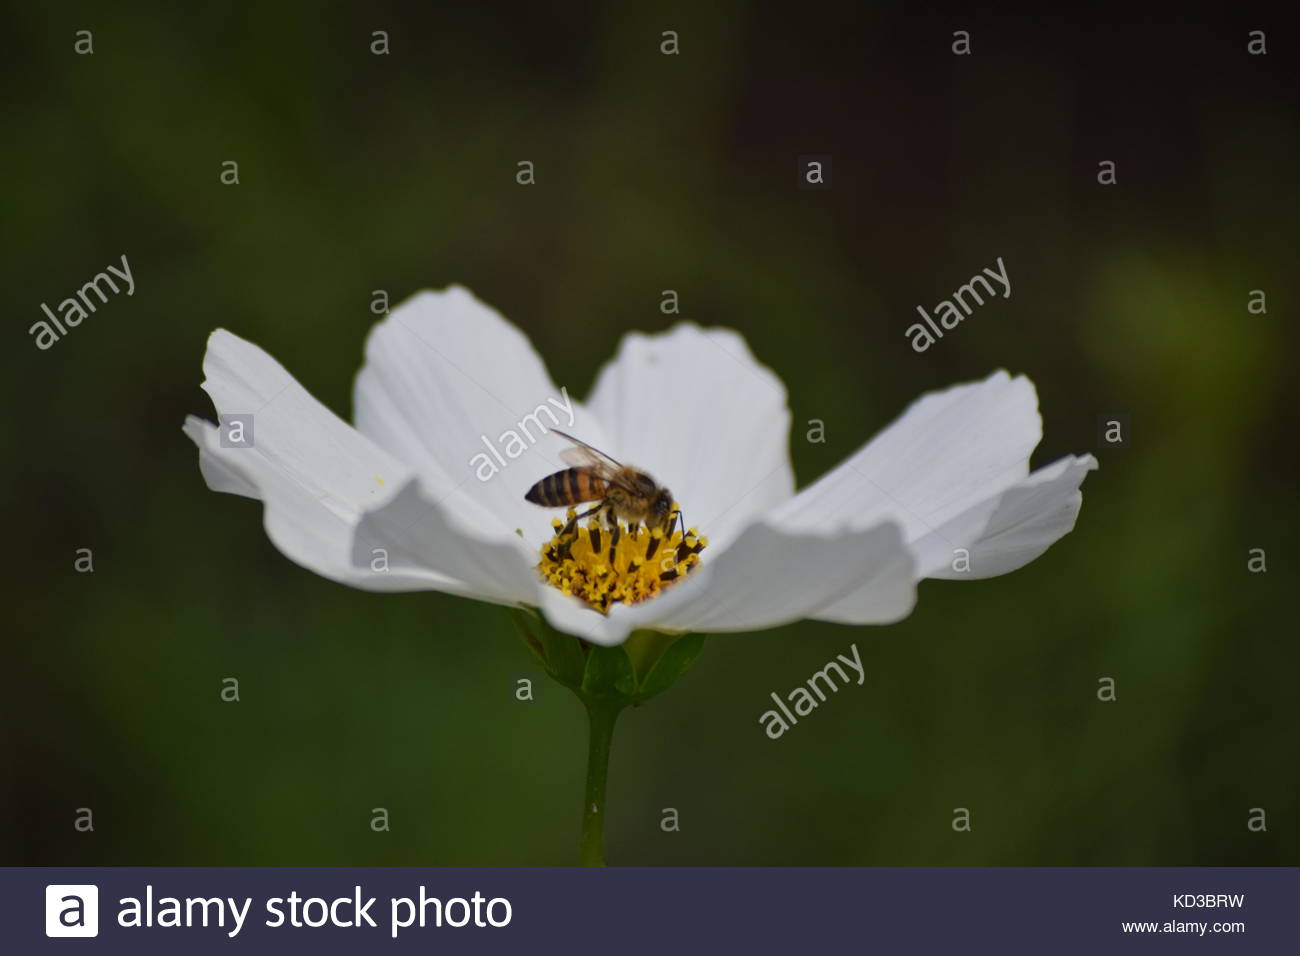 A bee sitting on a white flower in Eastern Cape, South Africa - Stock Image